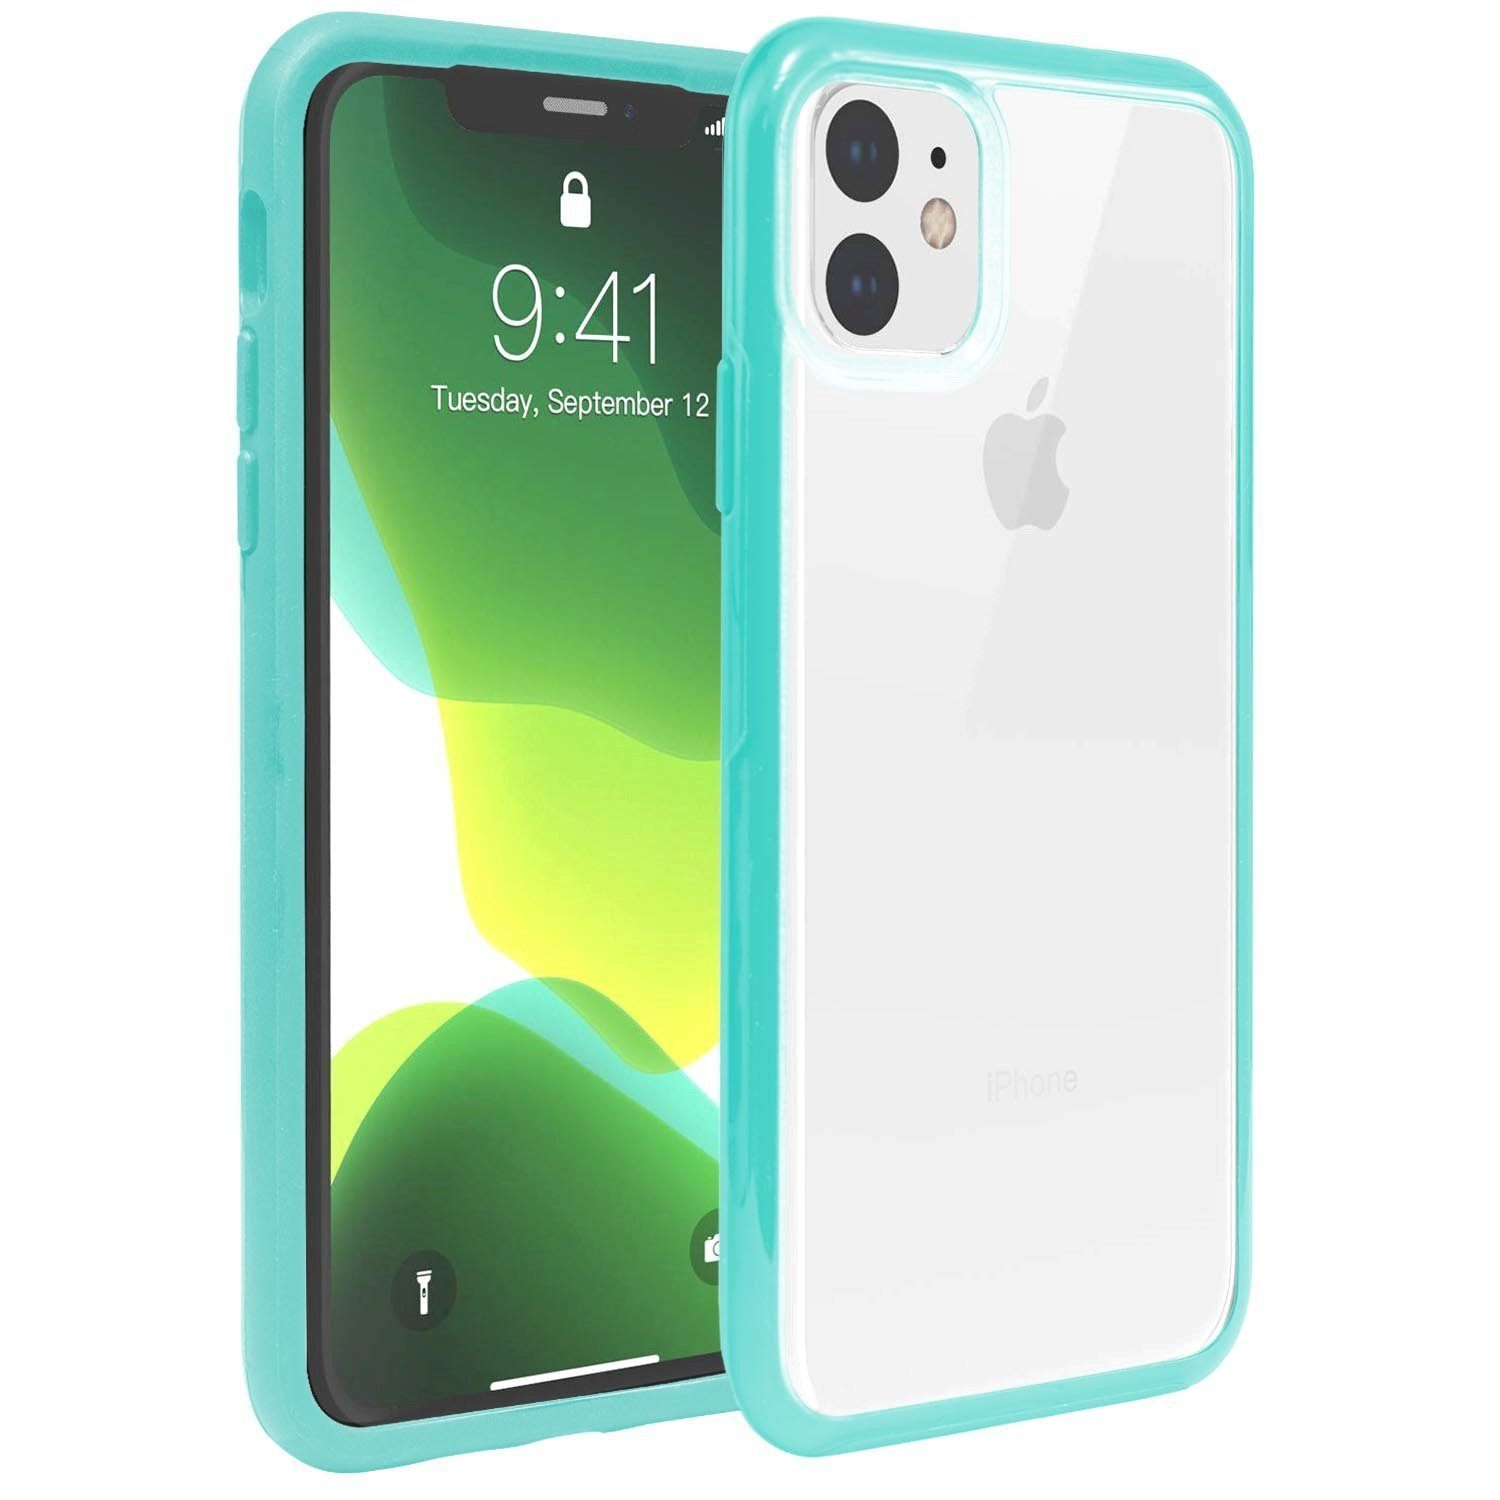 Hard Shell Transparent Back Case for iPhone 11 Pro Max - Teal Edge